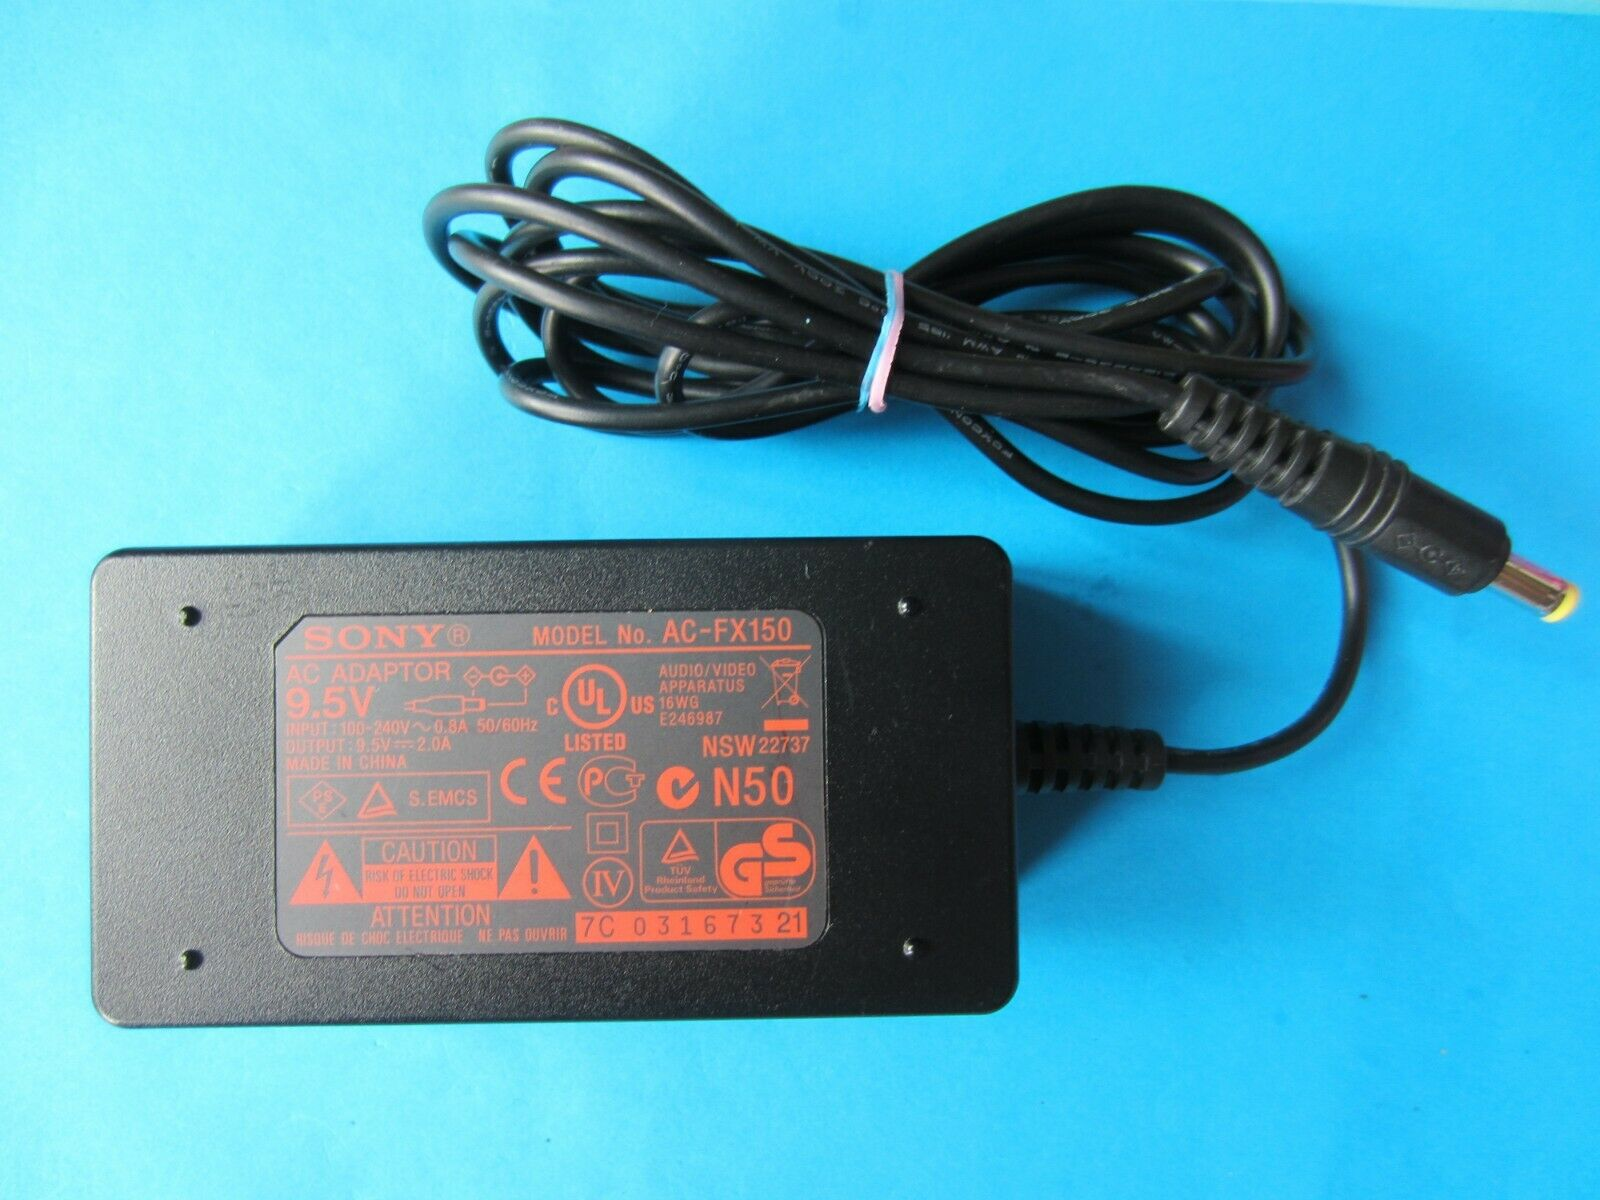 Genuine SONY 9.5V AC Adapter AC-FX150 9.5V 2A For DVD Players See Compatible